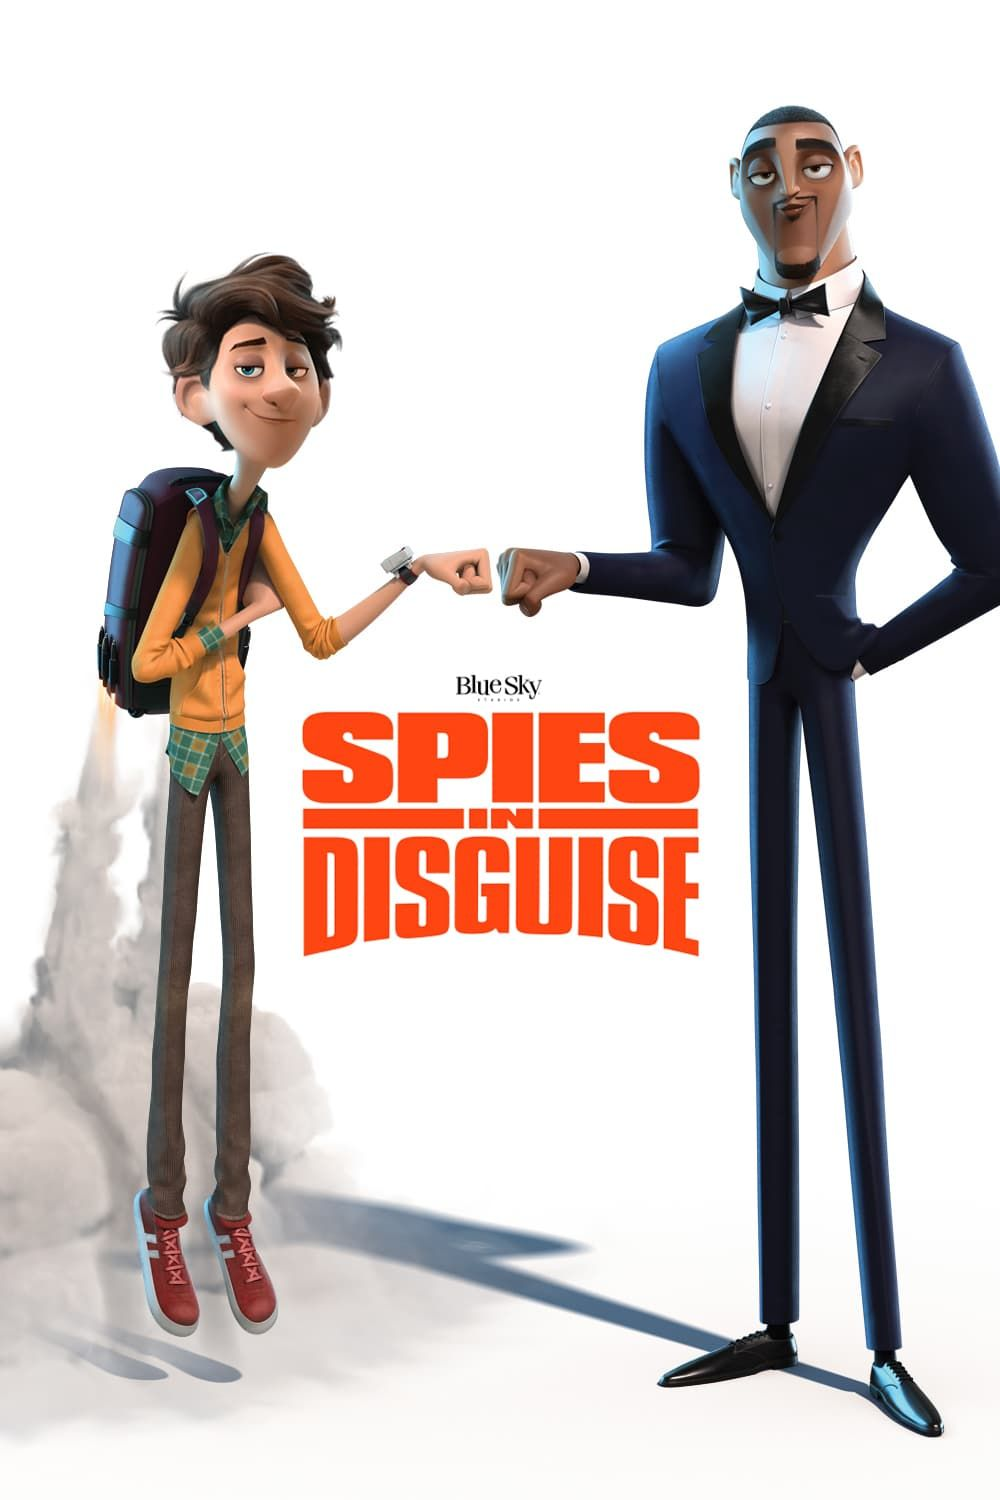 Pin By Joe Gee On Mb Misc Full Movies Online Free Free Movies Online Disguise